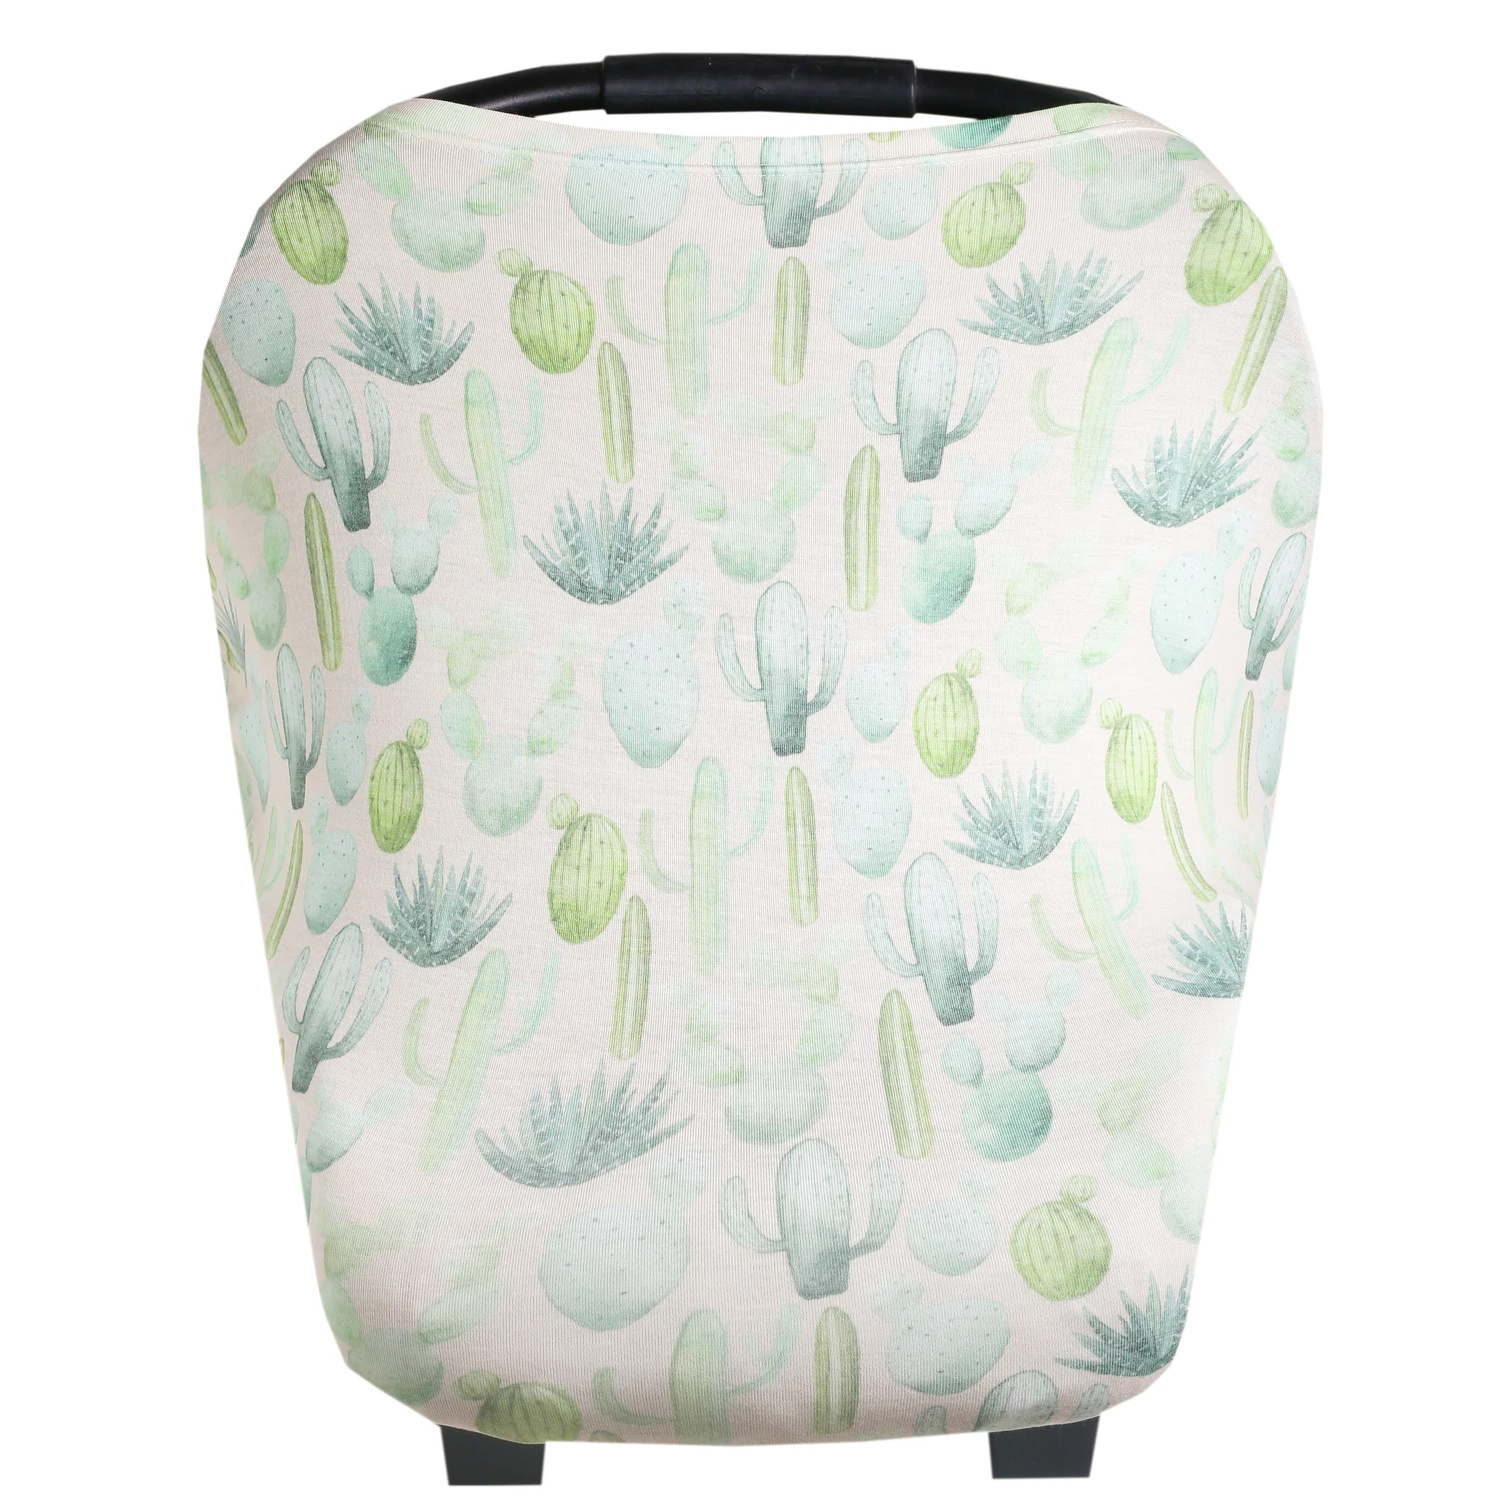 Copper Pearl Copper Pearl 5-in-1 Baby Covers: Car Seat Covers